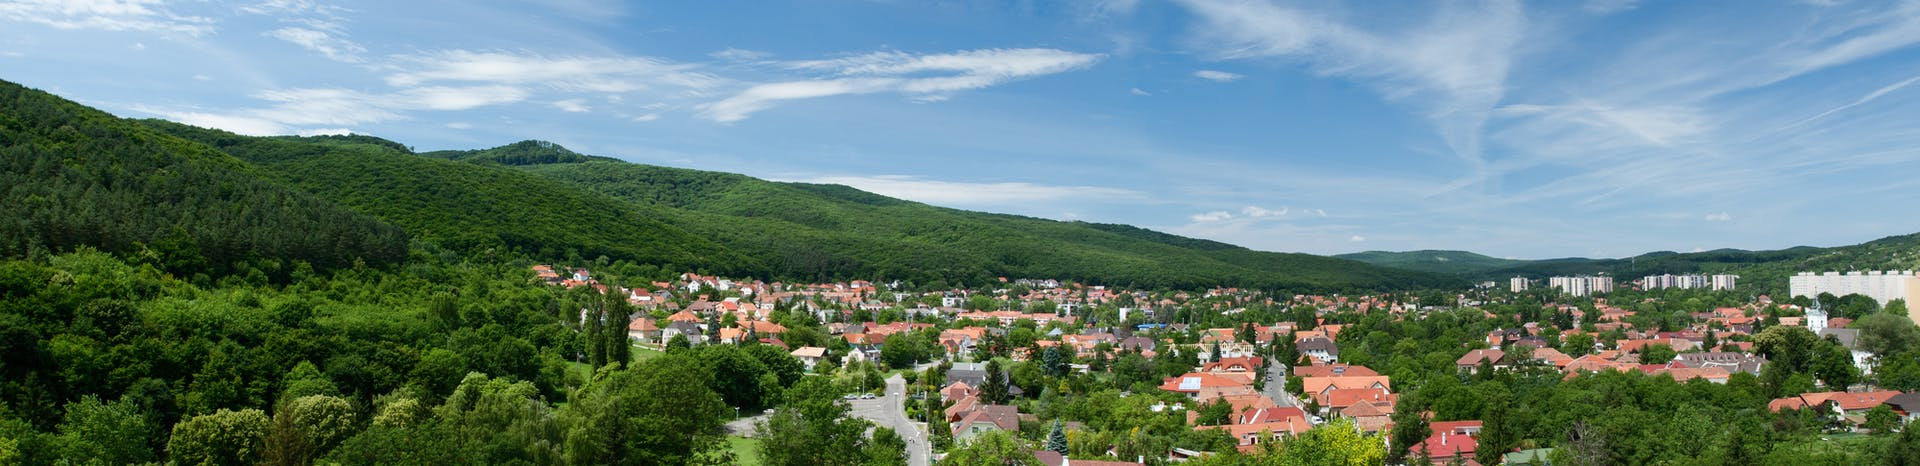 Picture of Miskolc